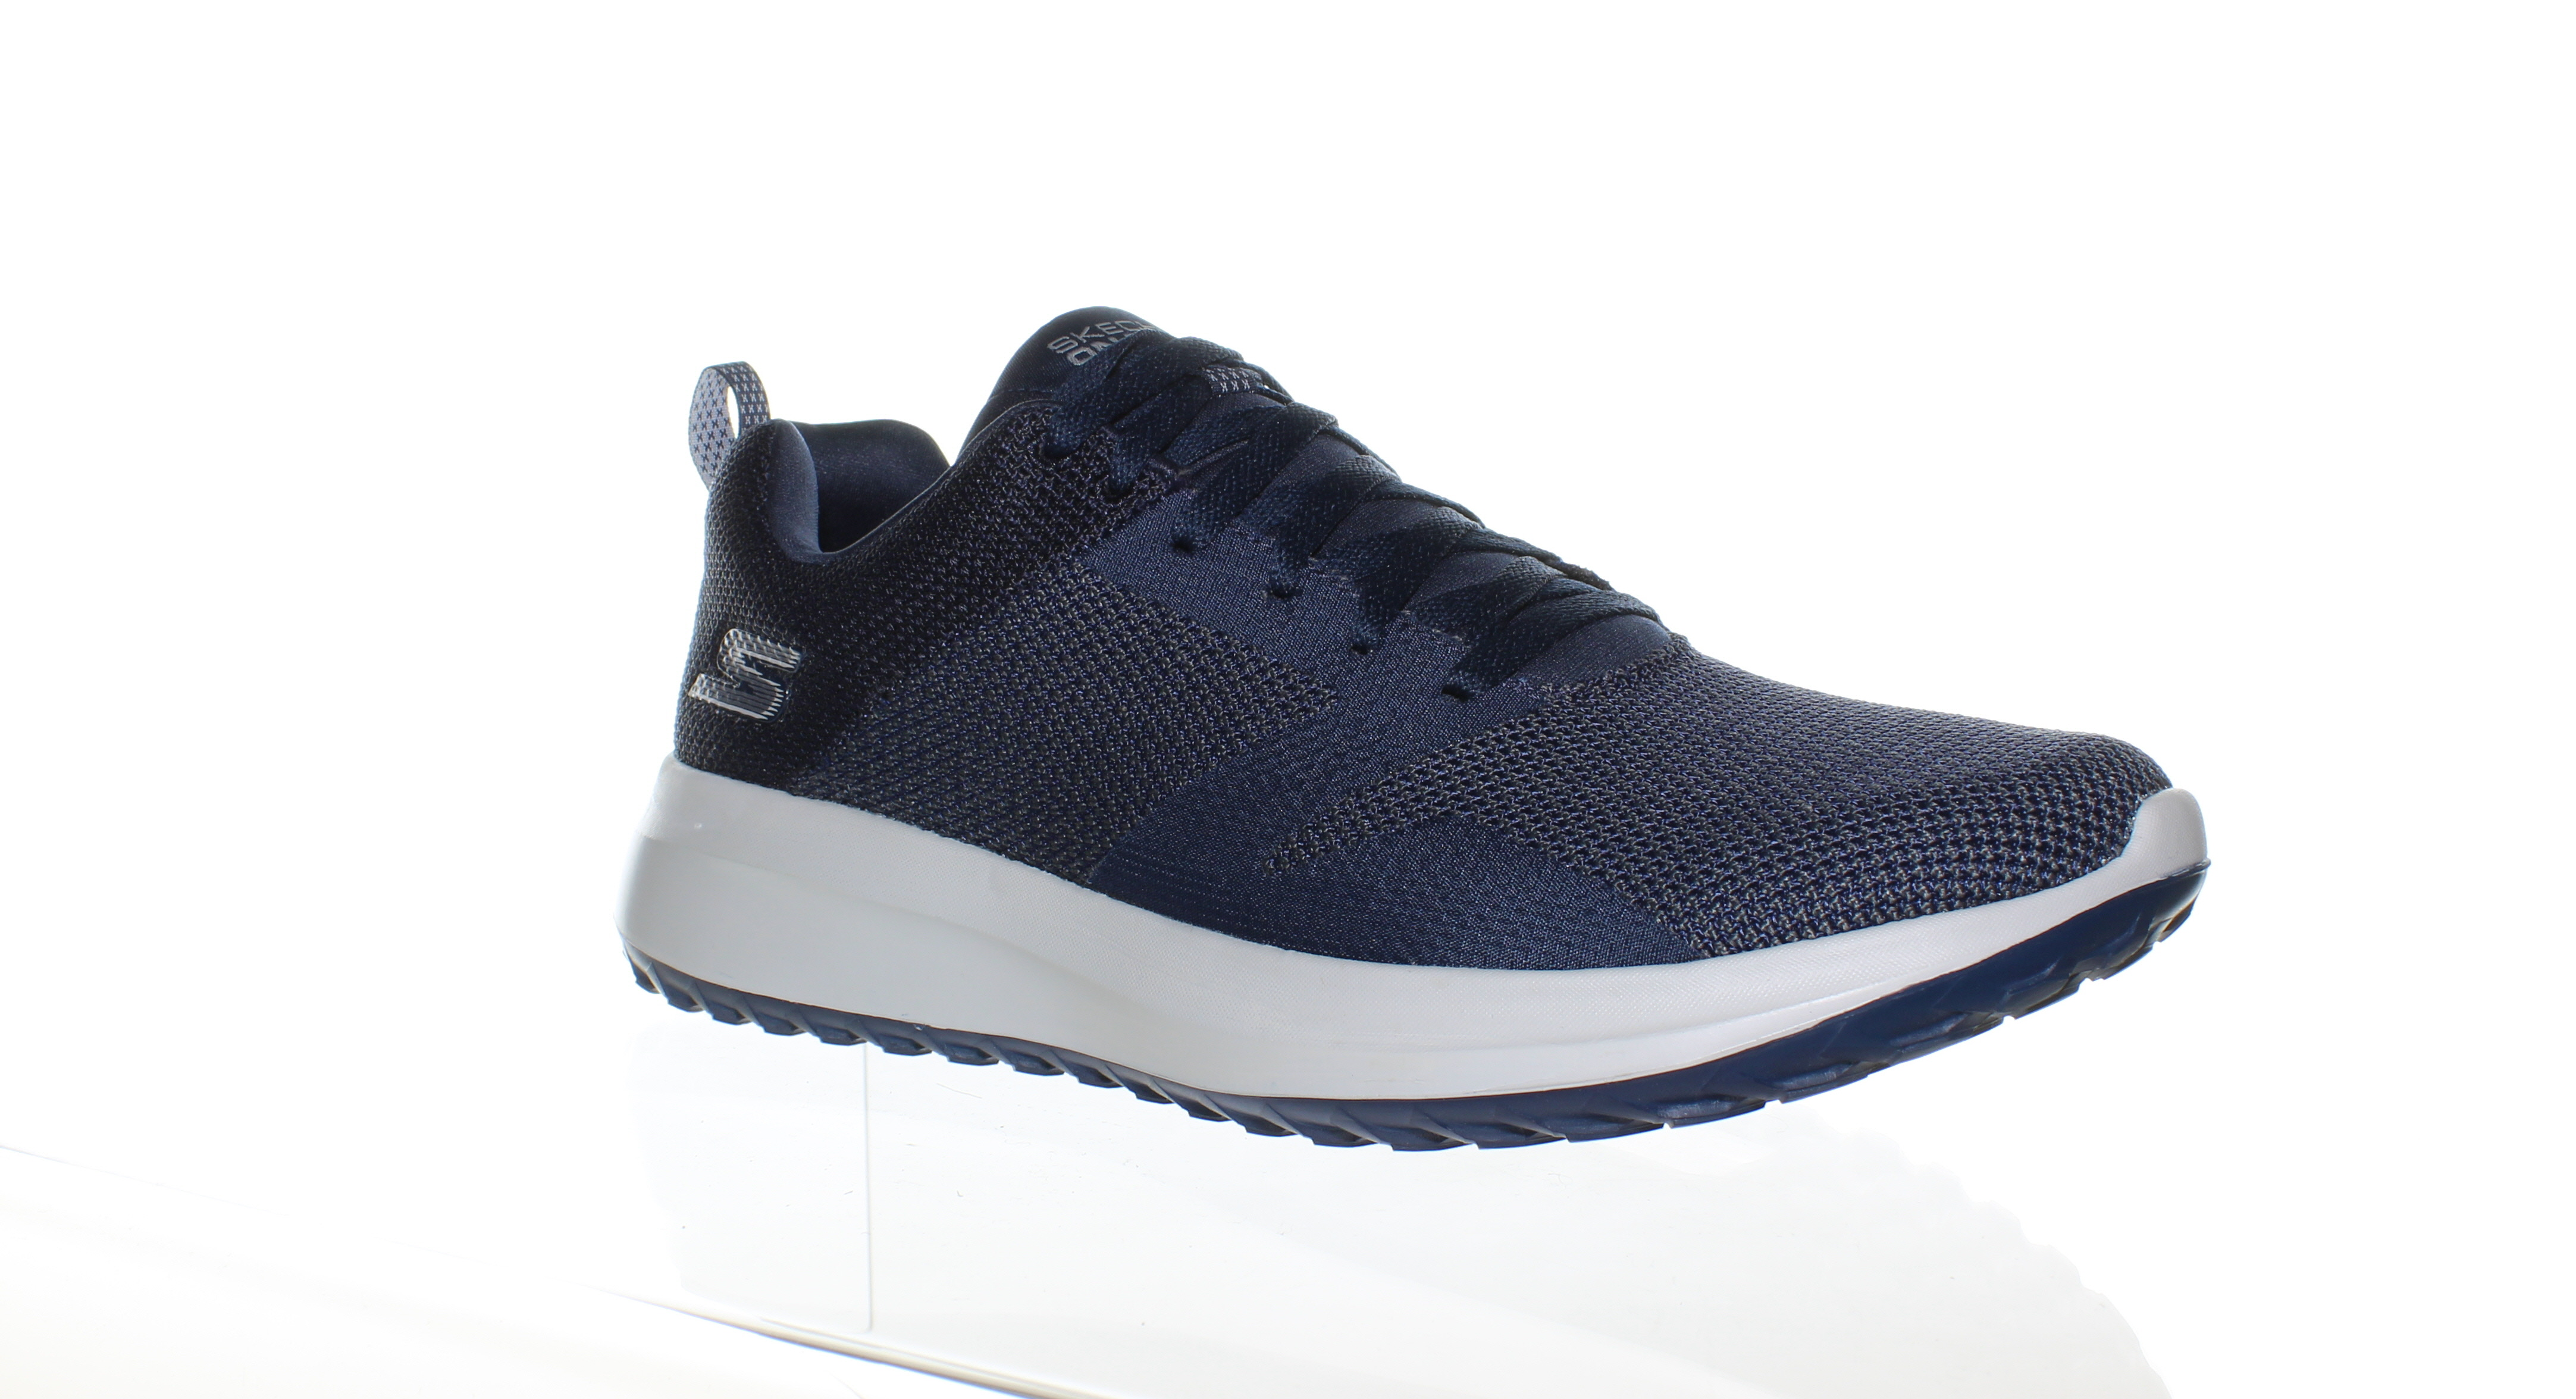 c98aeec91808 Skechers Mens On The Go City 4.0 Navy Gray Walking Shoes Size 9.5 ...